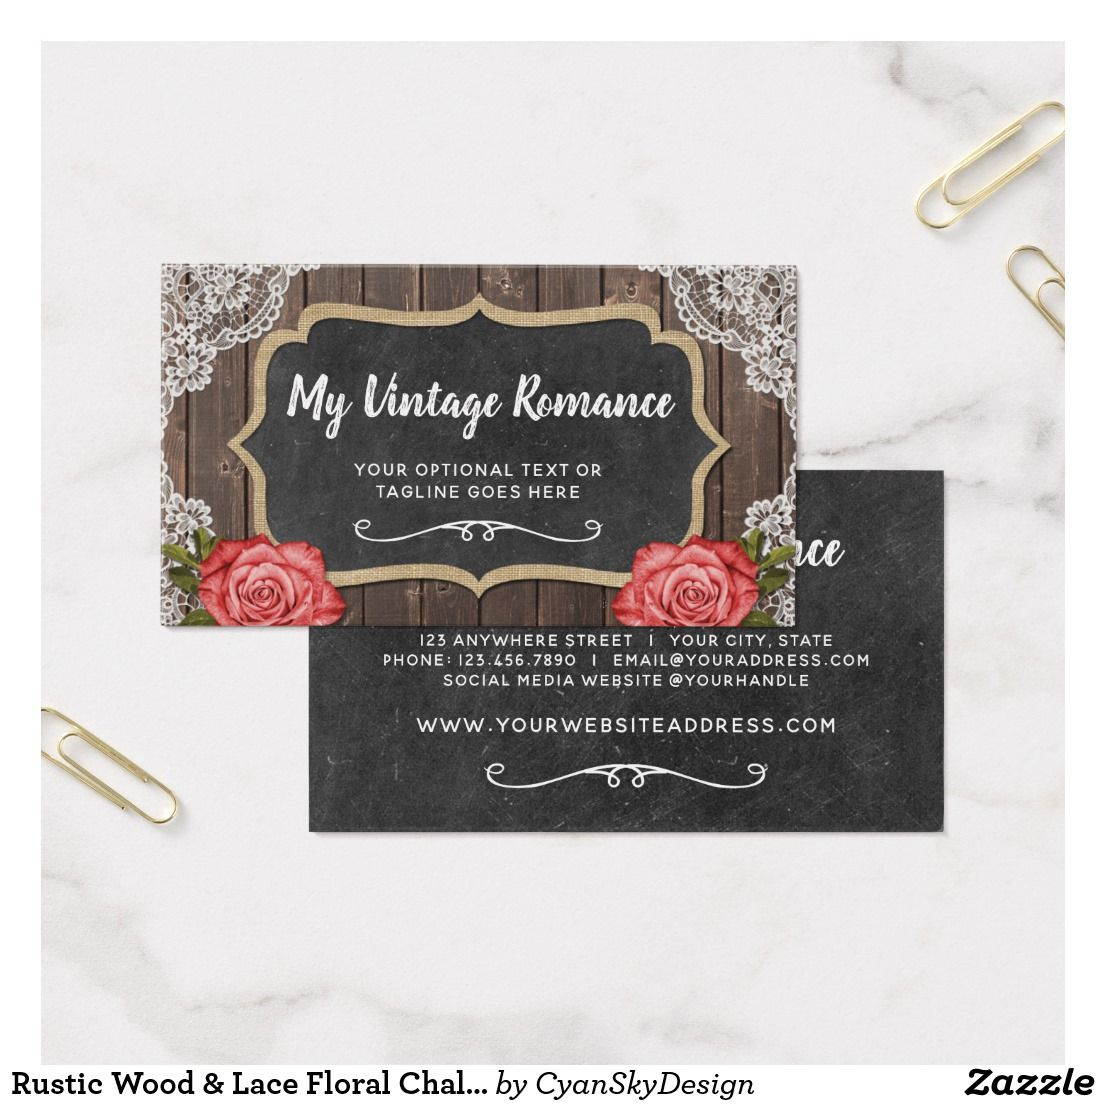 Rustic wood lace floral chalkboard country chic business card rustic wood lace floral chalkboard country chic business card small business etsy shop reheart Image collections